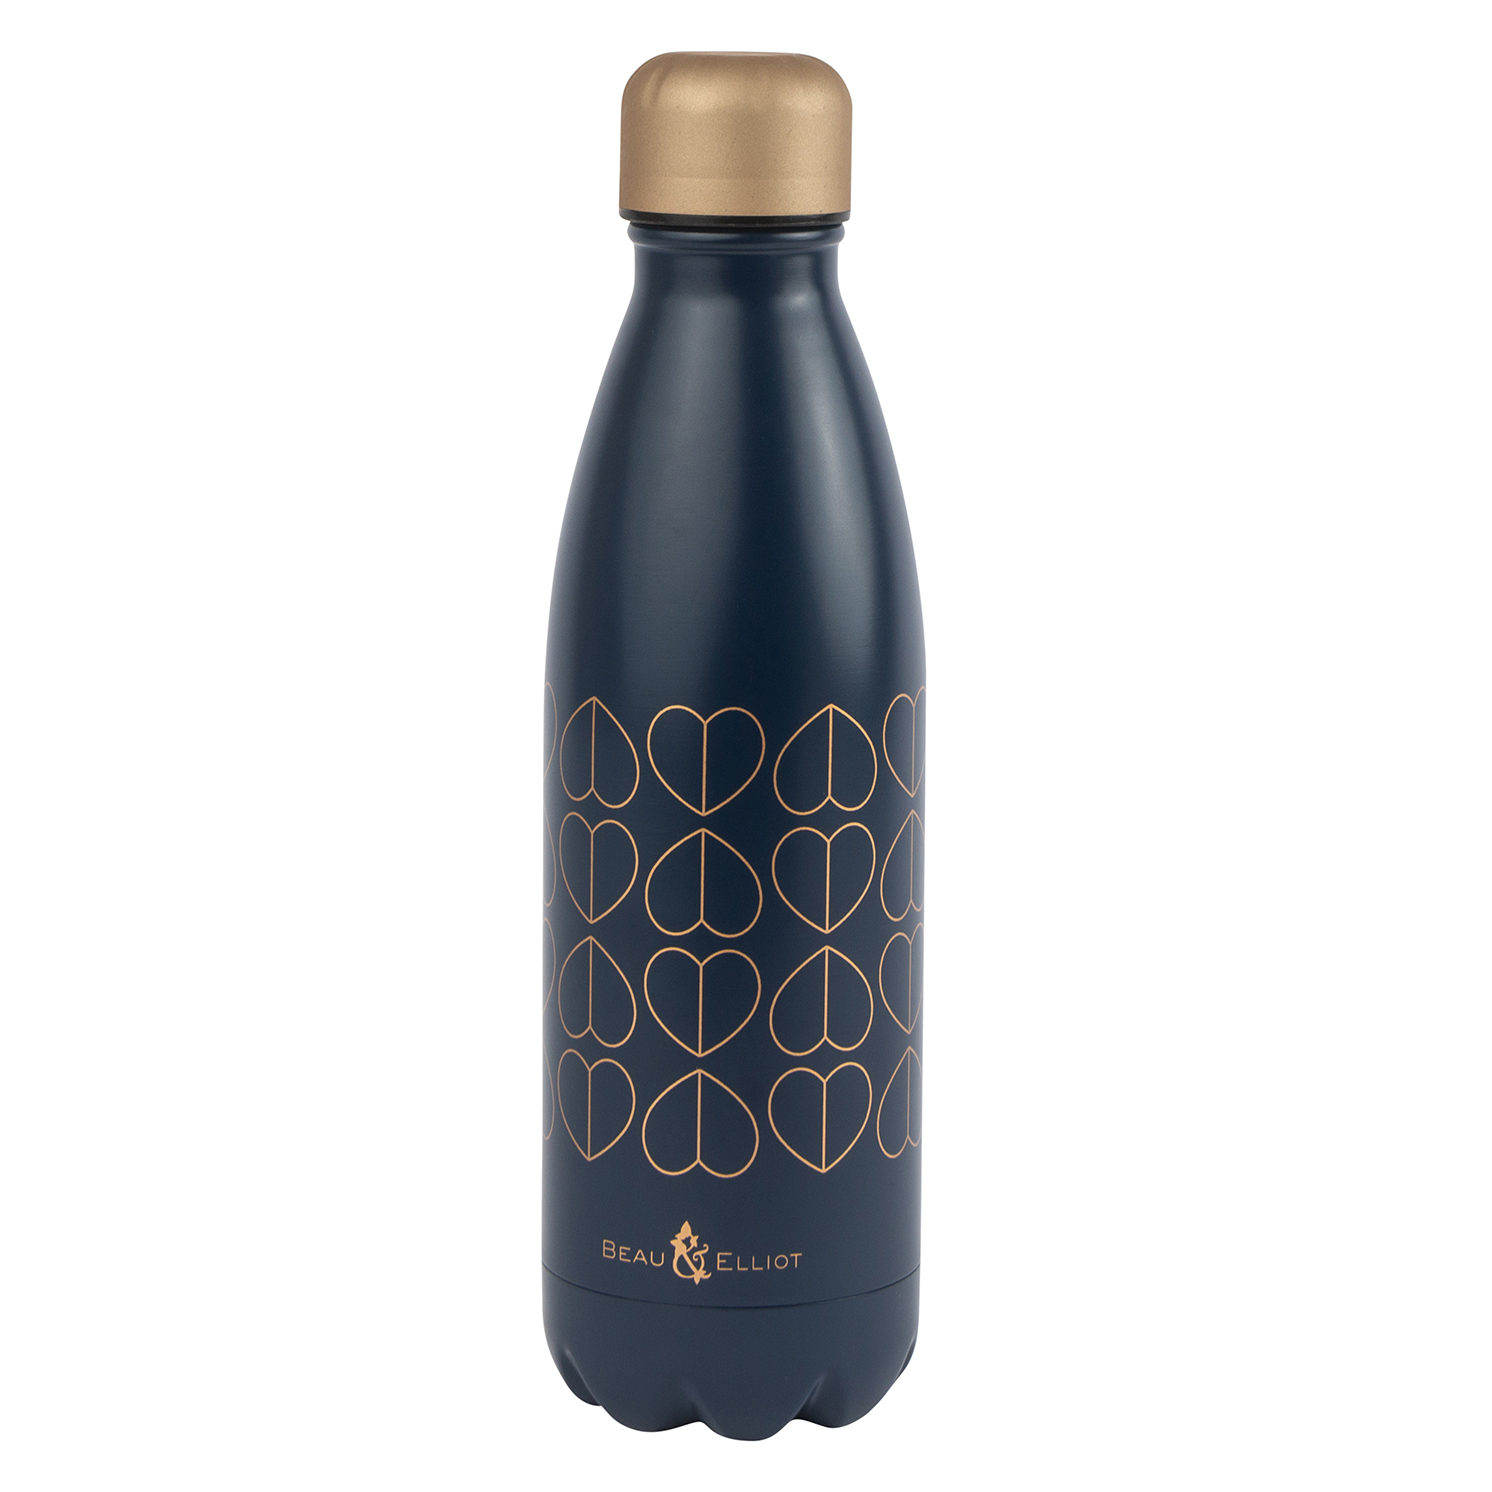 Beau & Elliot – Navy Blue Hearts Vacuum Insulated Stainless Steel Drinks Bottle